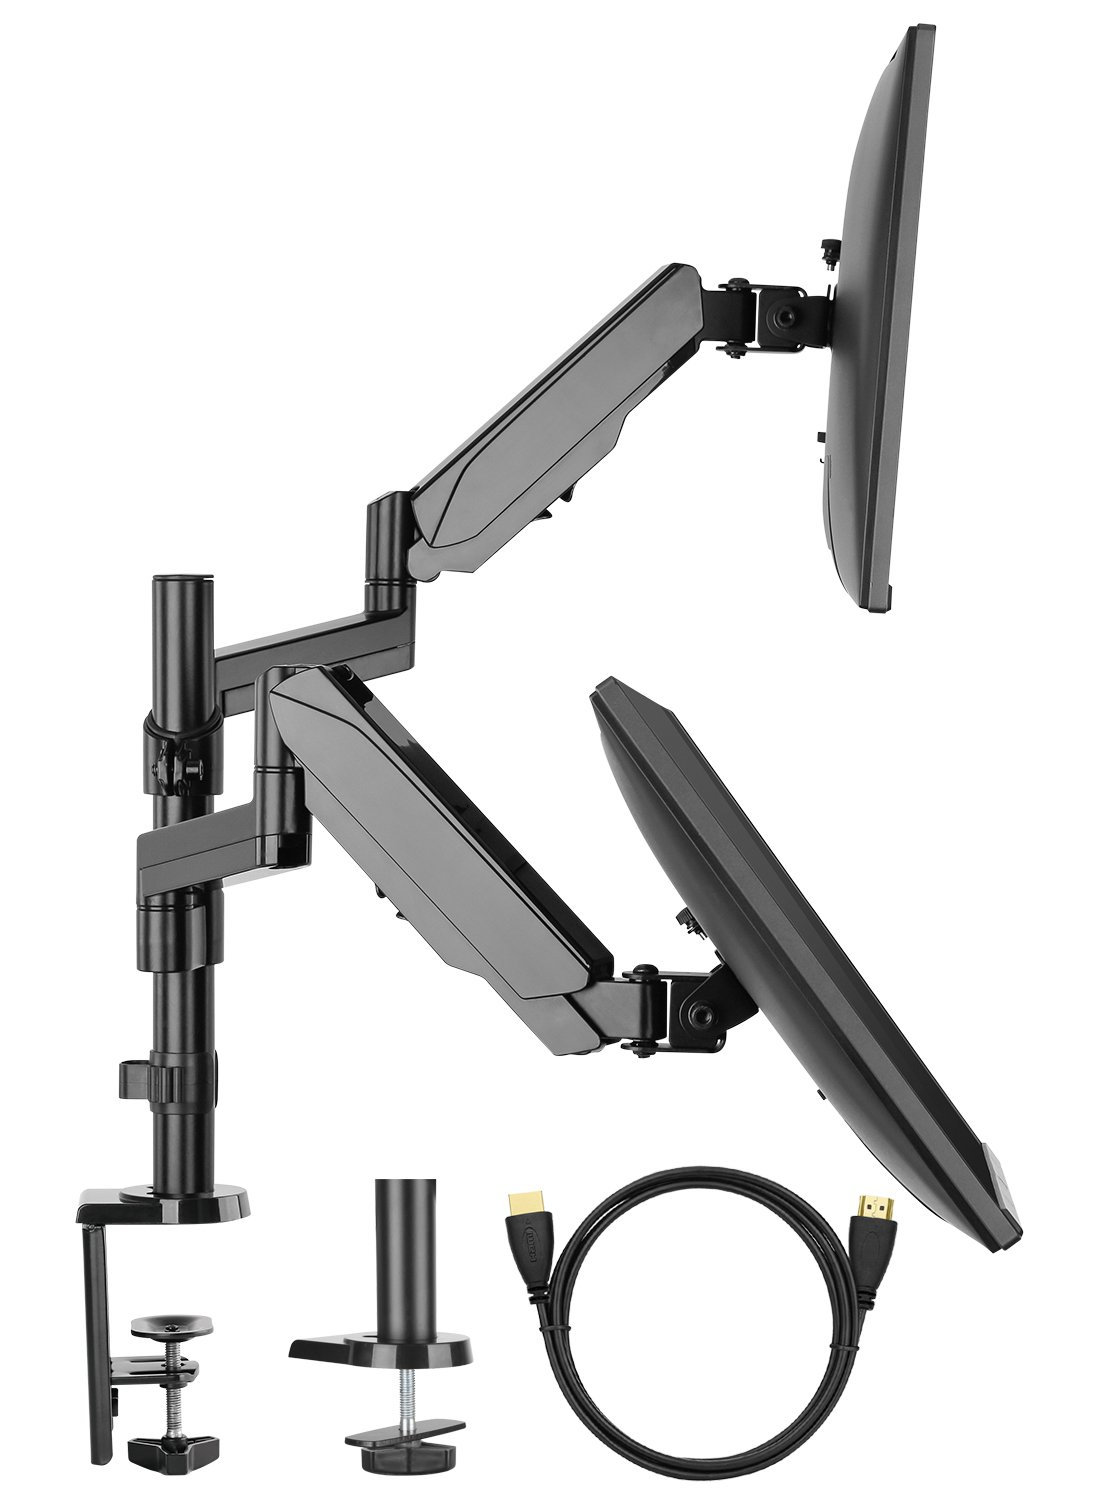 Dual Arm Monitor Stand, Full Motion Adjustable Gas Spring Monitor Mount Riser with C Clamp/Grommet Base for Two 17 to 32 inch LCD Computer Screens, Each Arm Holds up to 17.6lbs, Bonus HDMI Cable